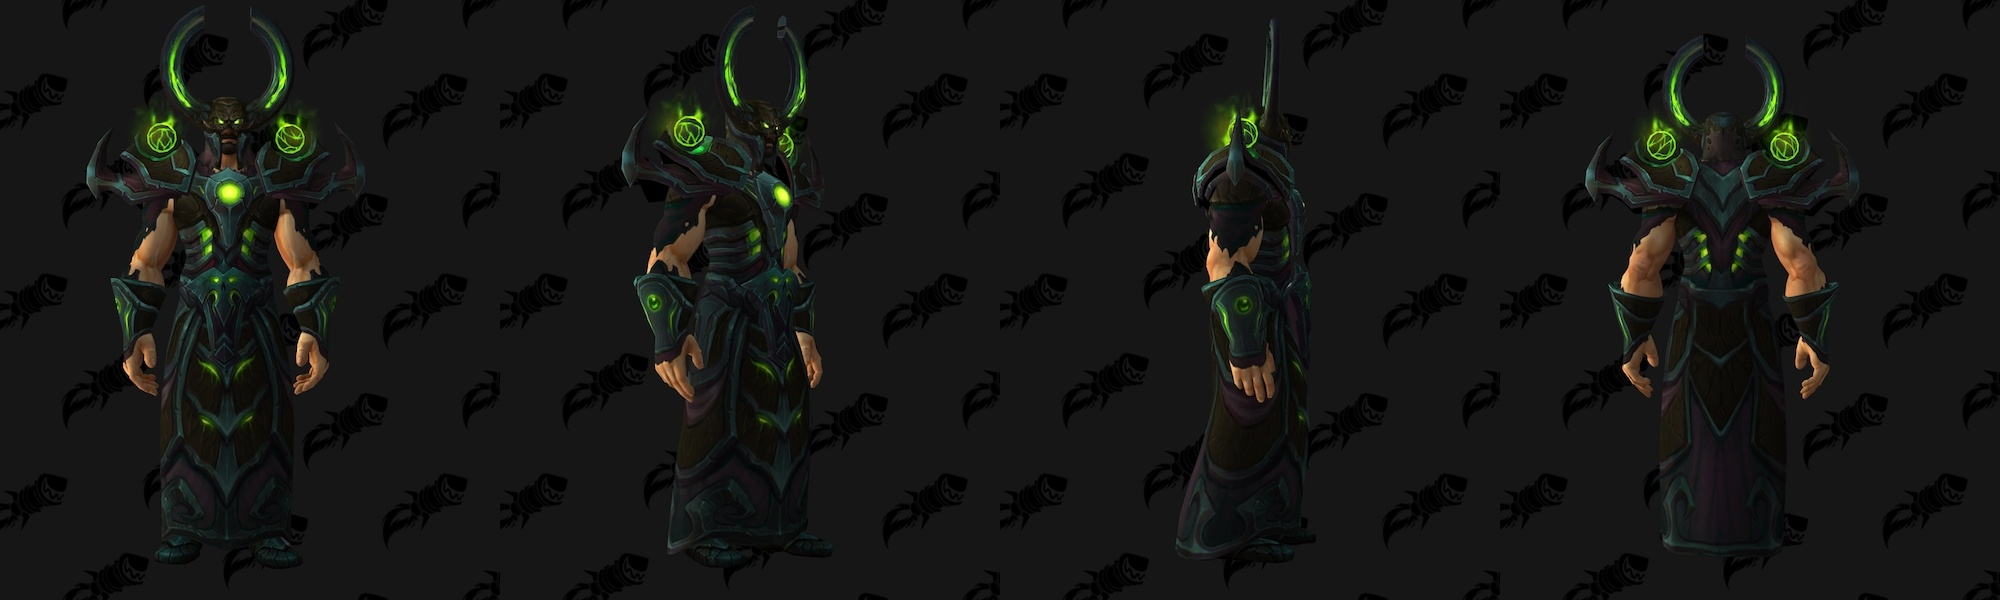 World-Defiler\u0027s Plate is a plate set from the chests and rares primarily from Krokuun. & Transmog Armor and Weapons from the Rares and Treasures of Argus ...